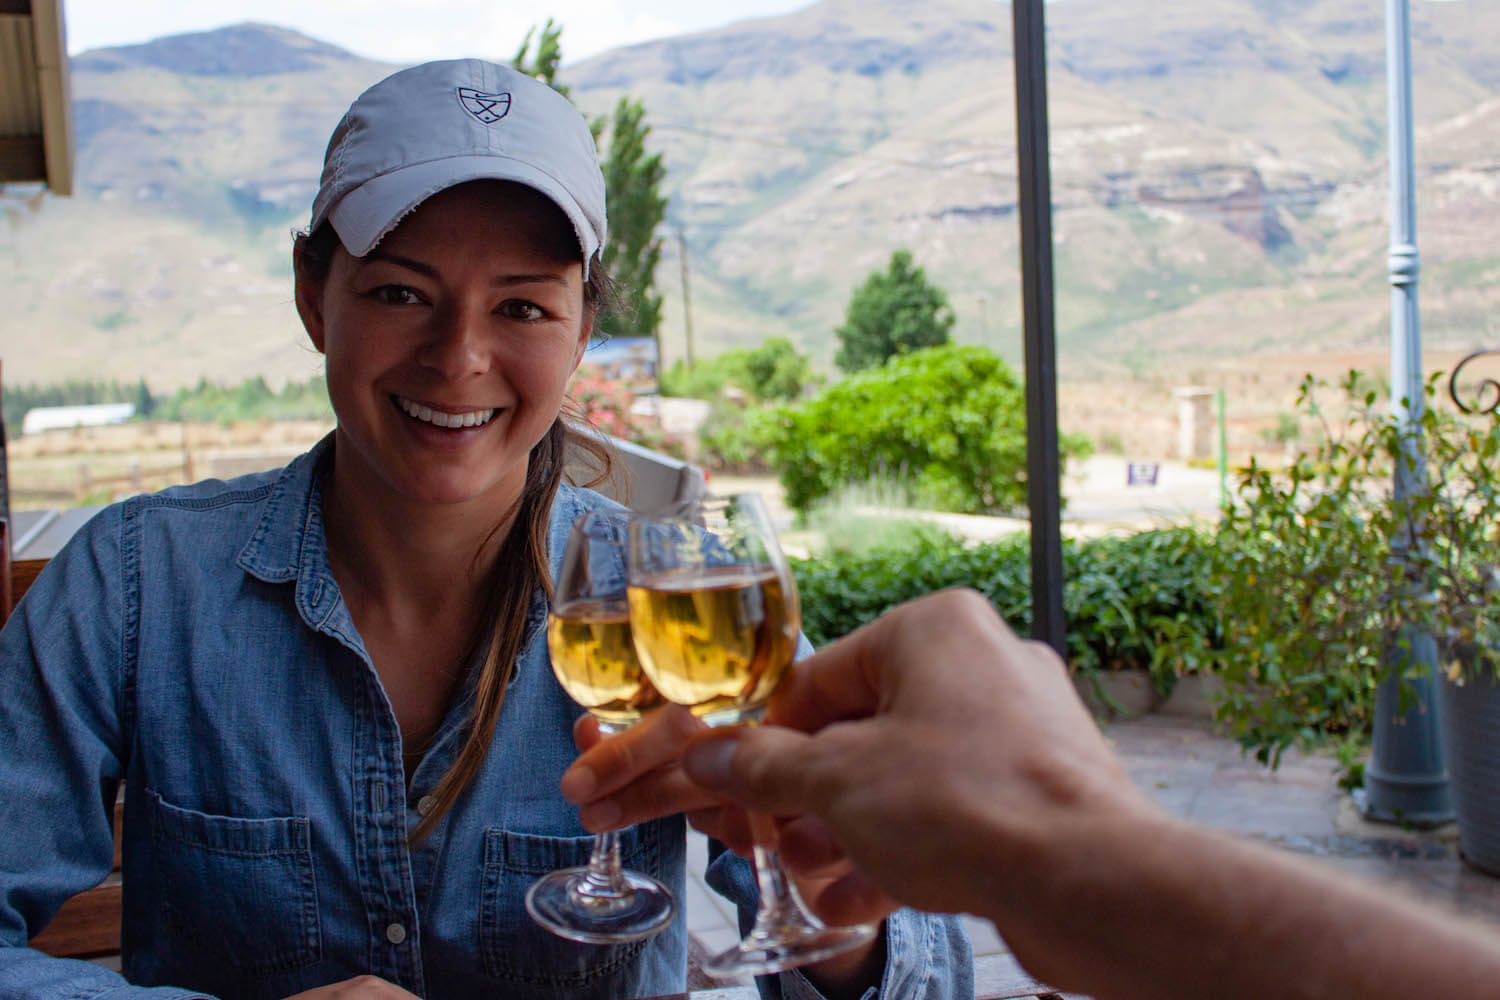 Cheersing with sherry at Cinnamon and Sugar restaurant